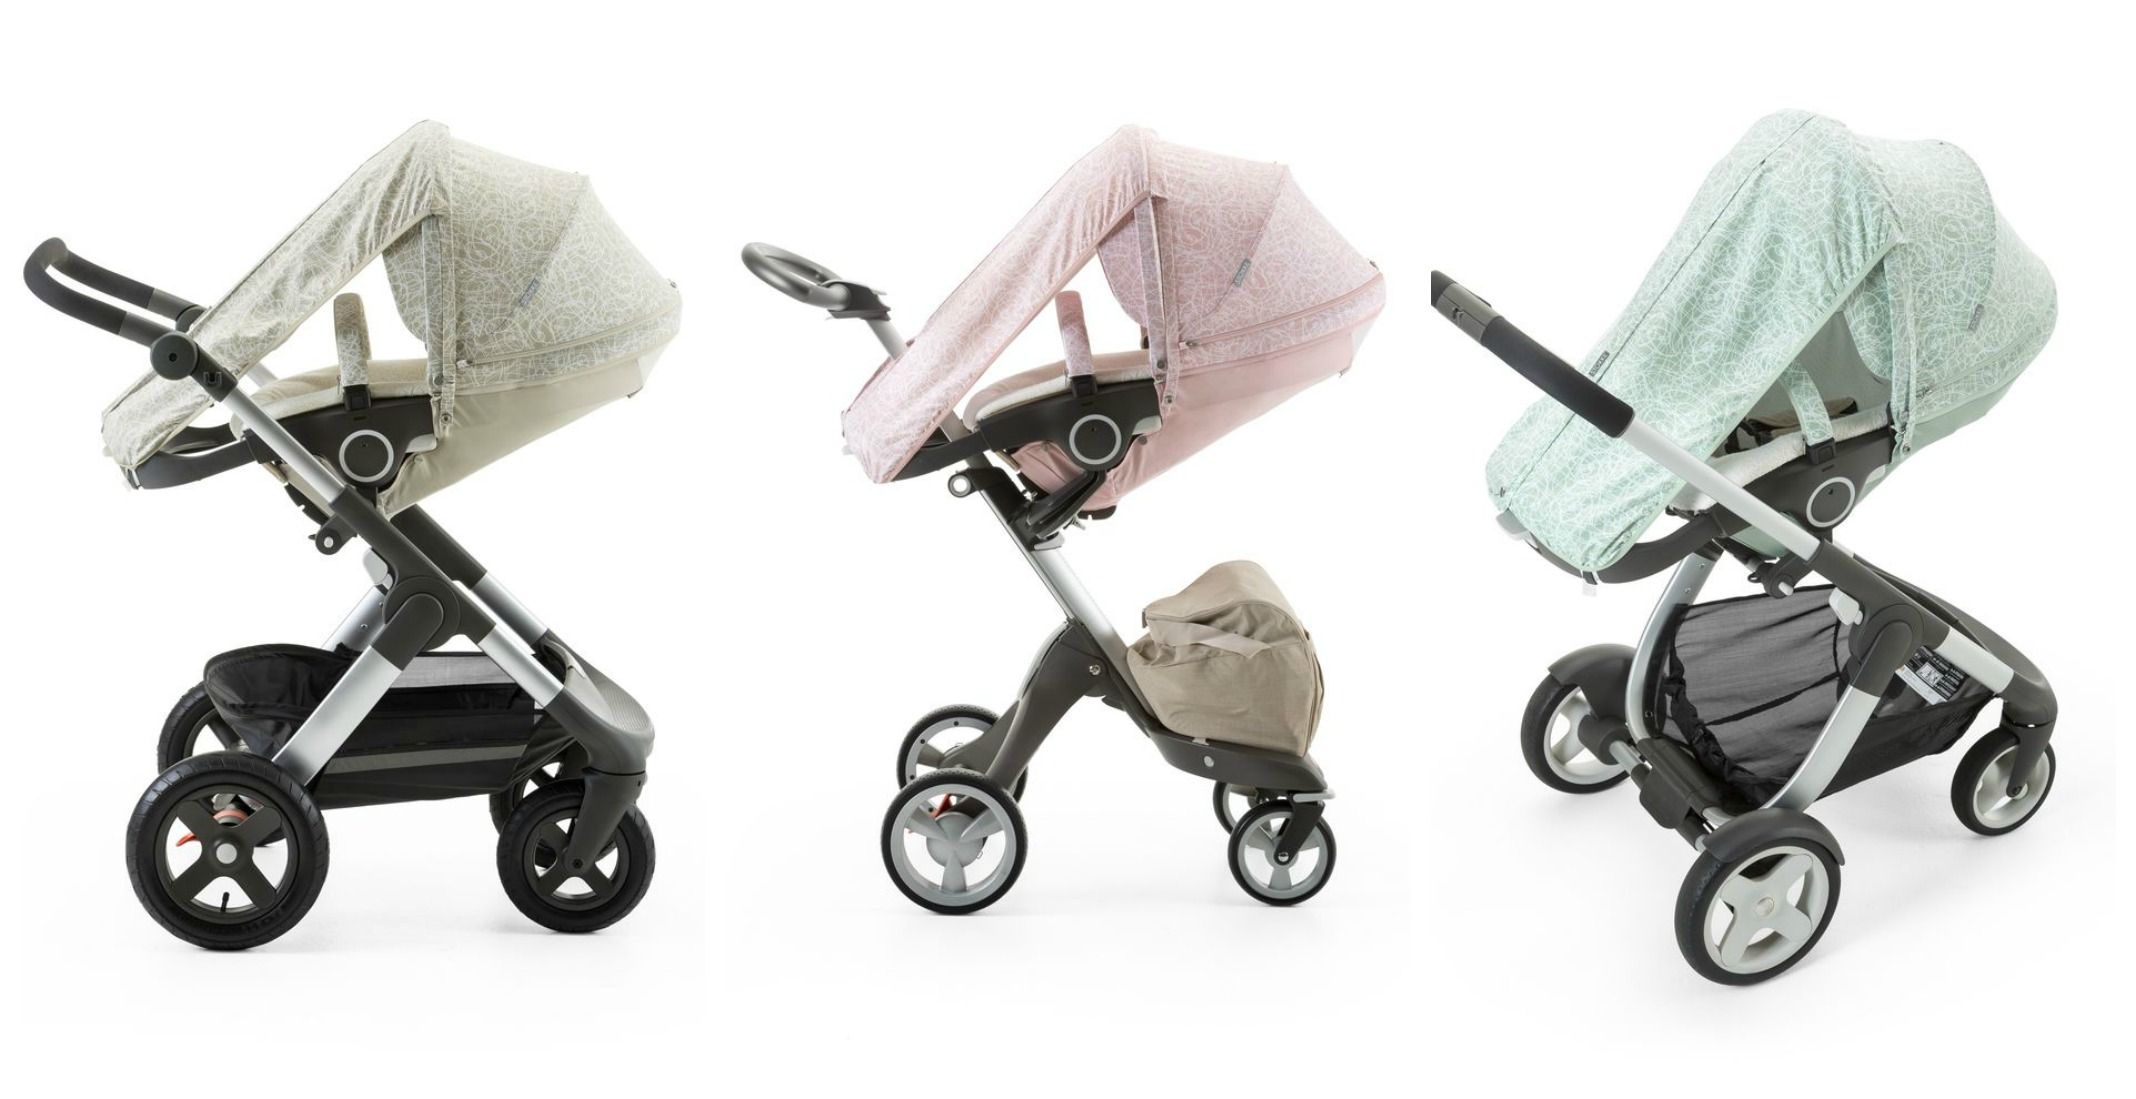 tokke-Summer-Kit-2015-Stokke-Xplory-Scribble-Fade-Pink-Stokke-Trailz-Sandy-Beige-Stokke-crusi-Scribble-Salty-Blue-GoodGirlsCompany-het-blog-voor-moeders-met-dochters